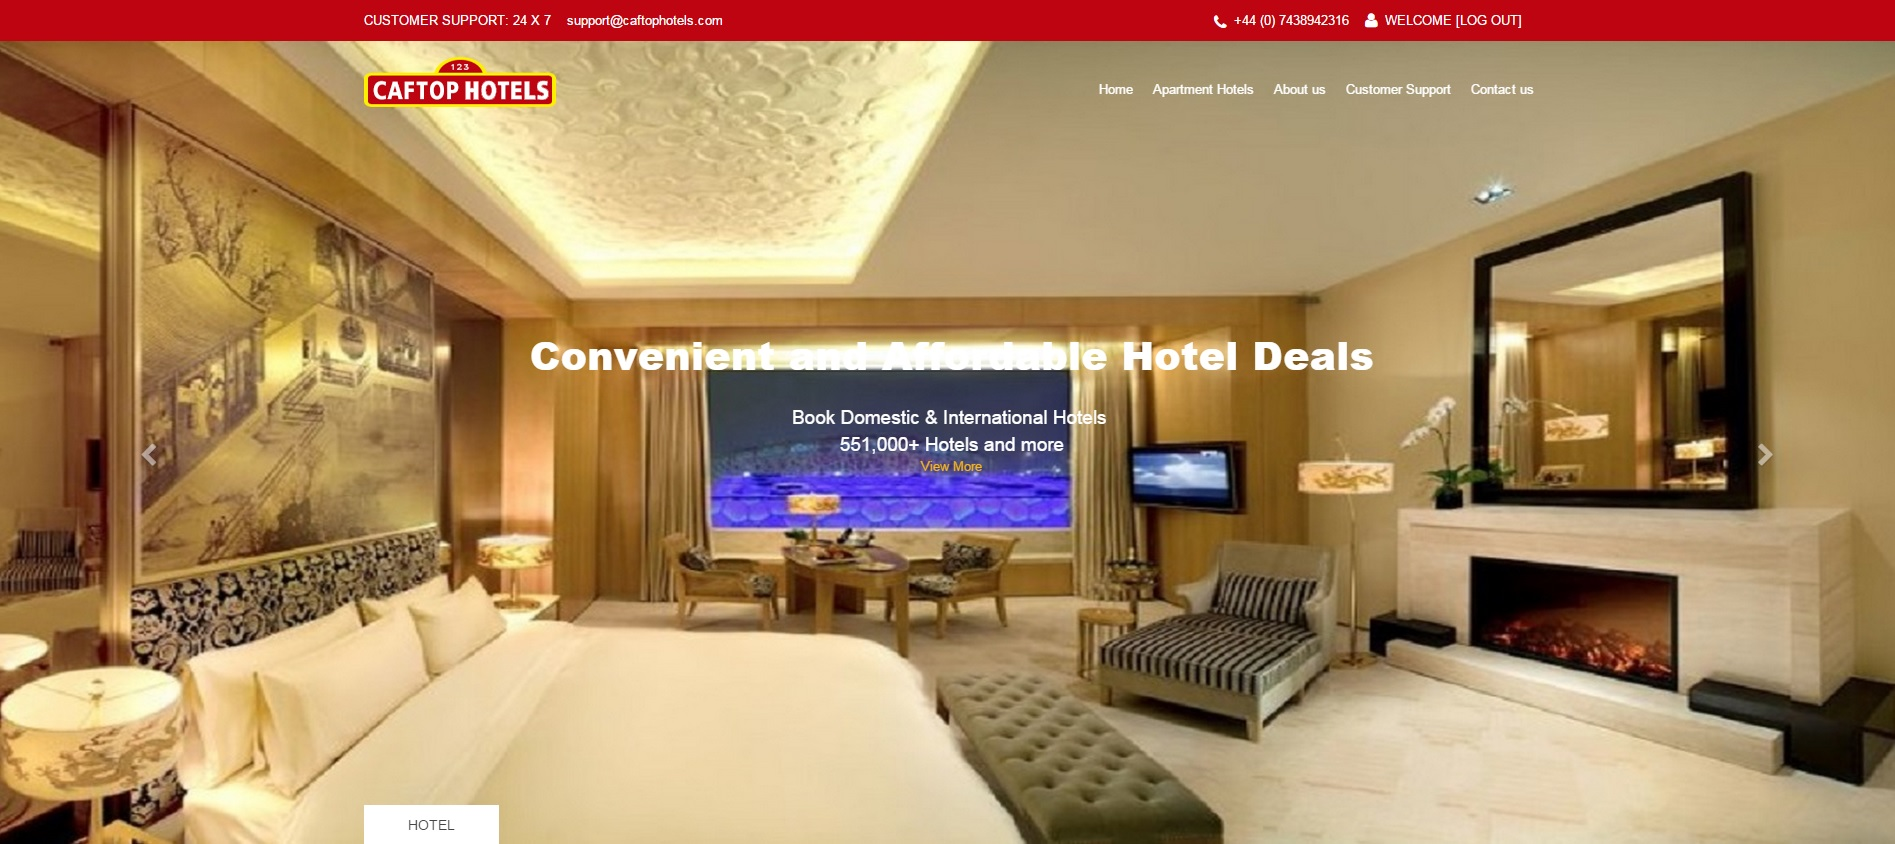 Search cheap hotels with KAYAK. Use the hotel finder to search for the cheapest hotel deal for all major destinations around the world. KAYAK searches hundreds of hotel booking sites to help you find hotels and book hotels that suit you best. Since KAYAK searches many hotel sites at once, you can find discount hotels quickly.